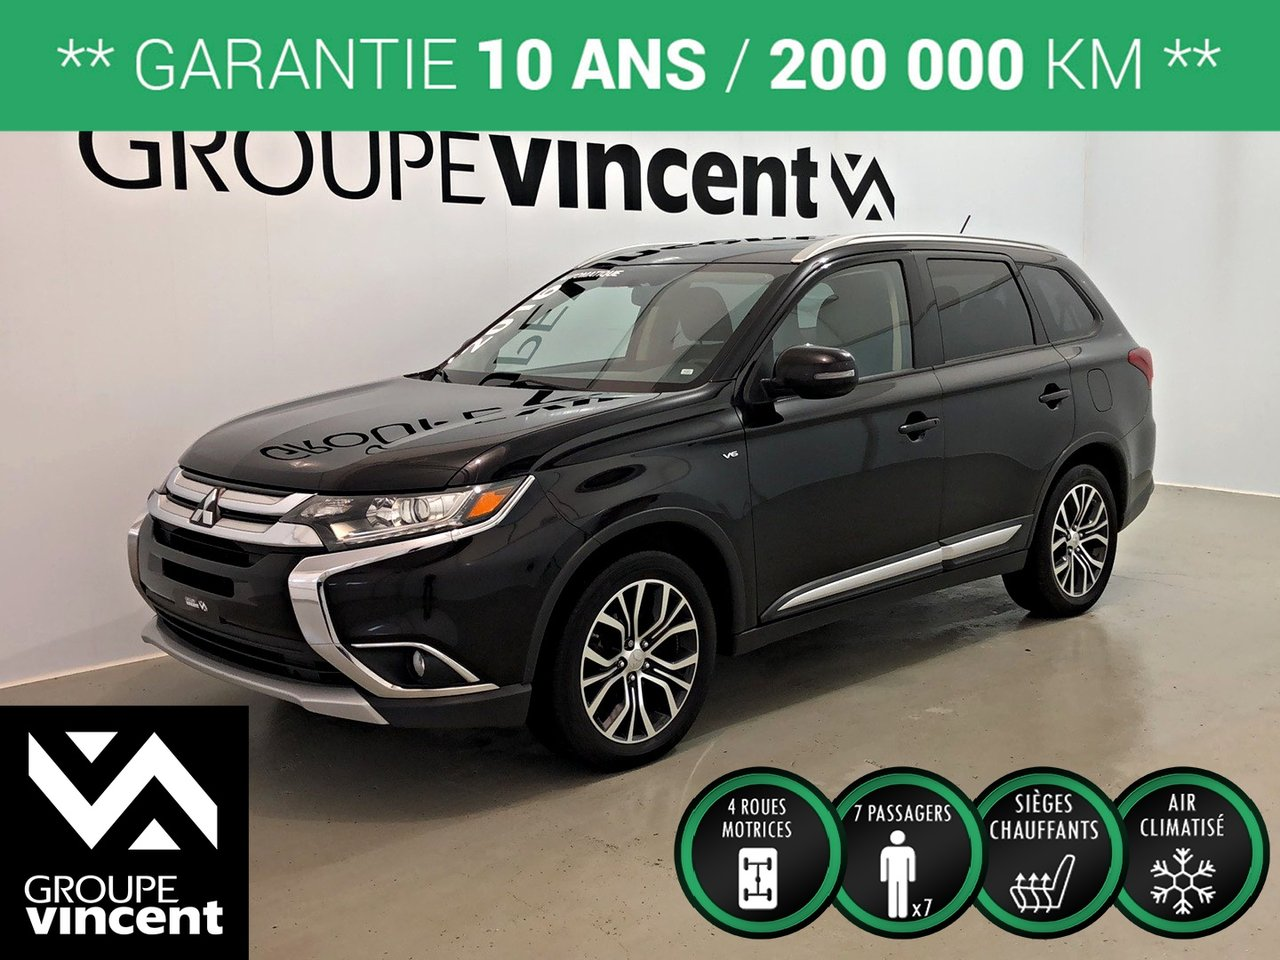 2016 Mitsubishi  Outlander SE AWD 7 PASSAGERS ** GARANTIE 10 ANS **